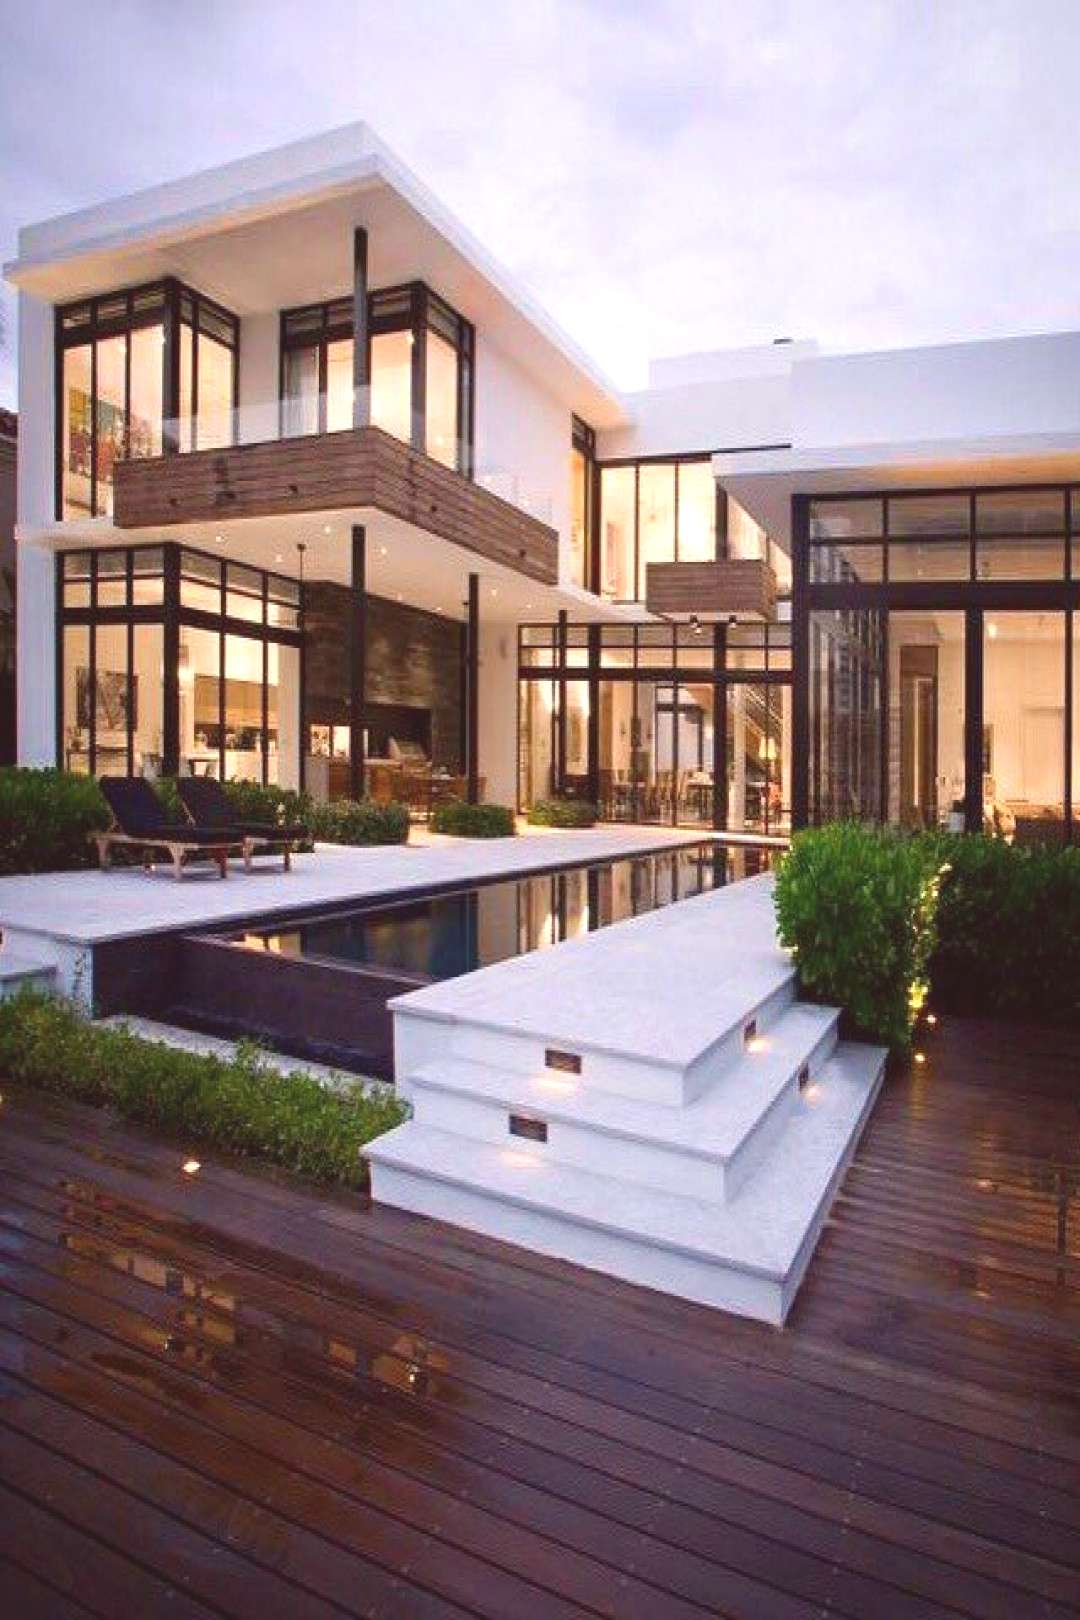 60 amazing outstanding contemporary houses design 2019 35 »